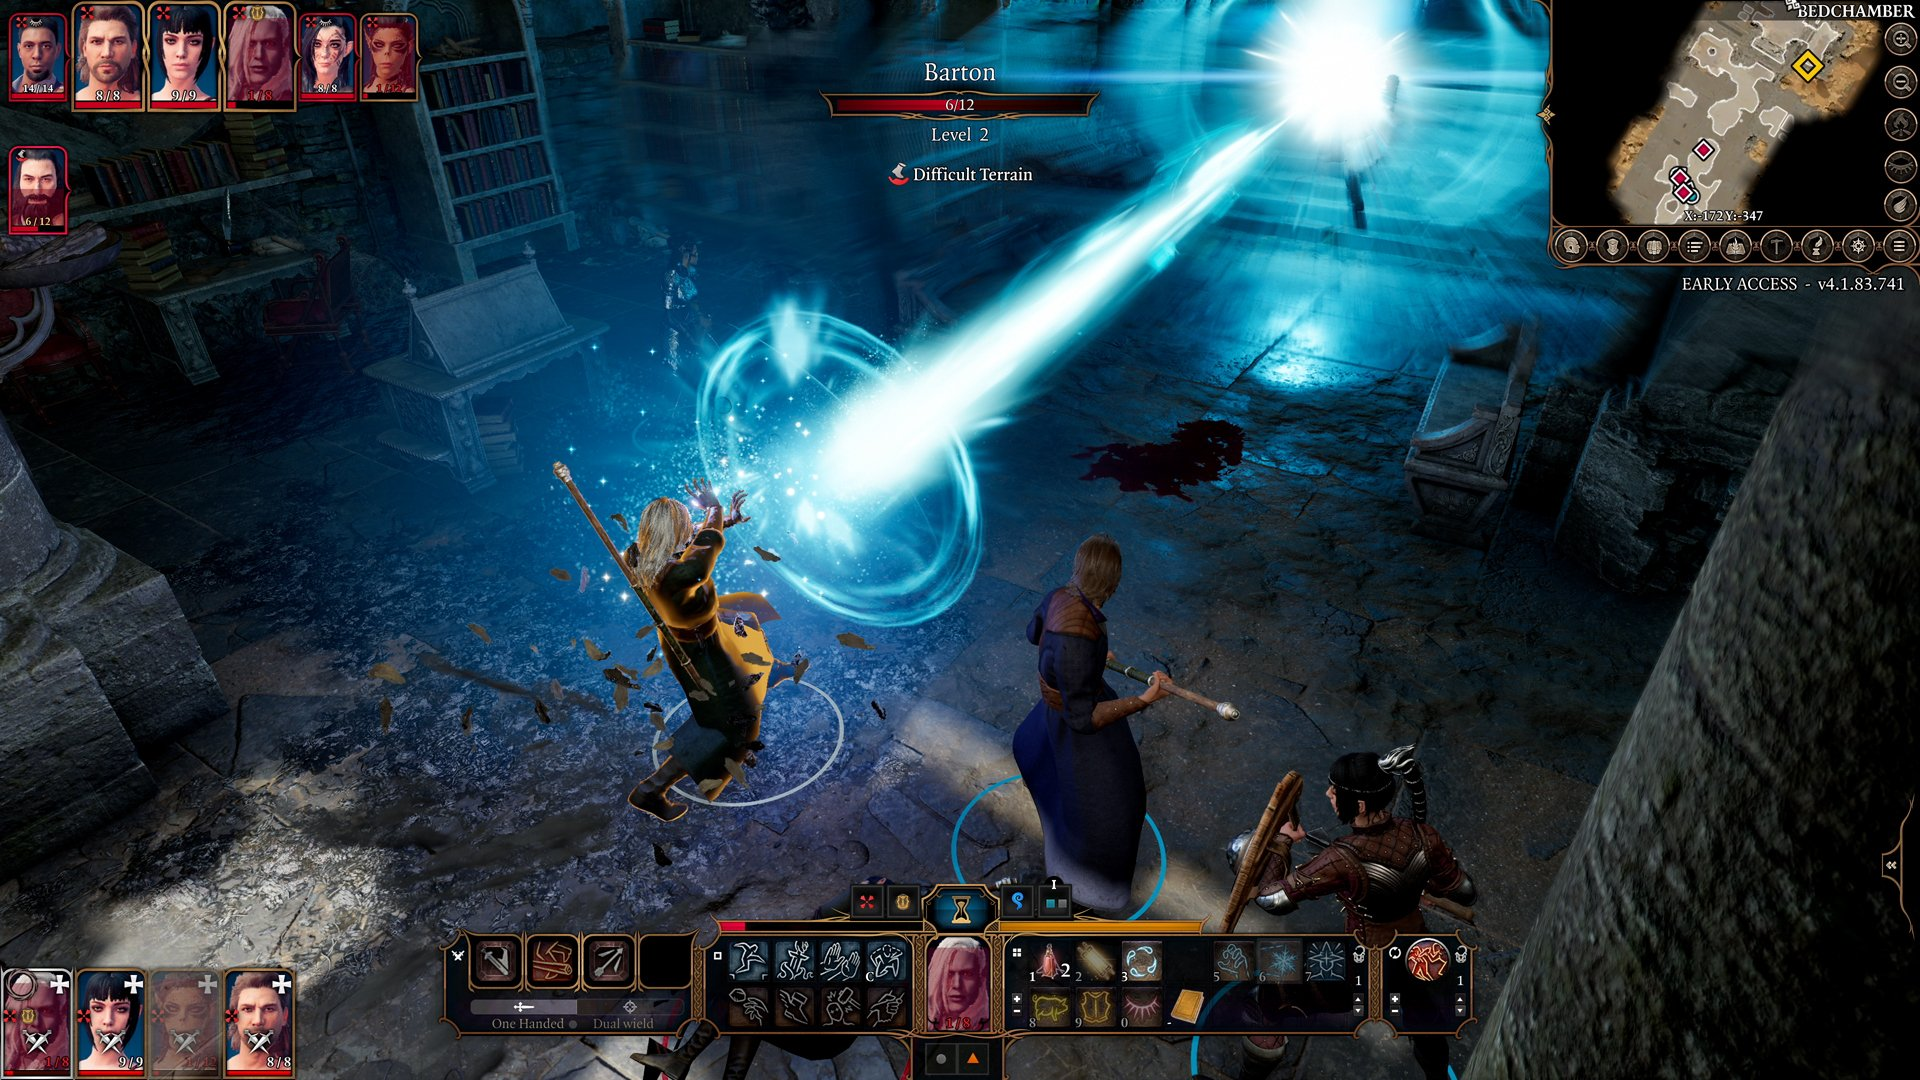 Screenshot for the game Baldur's Gate 3 (4.1.85.1780) [GOG] (Early Access) torrent download License